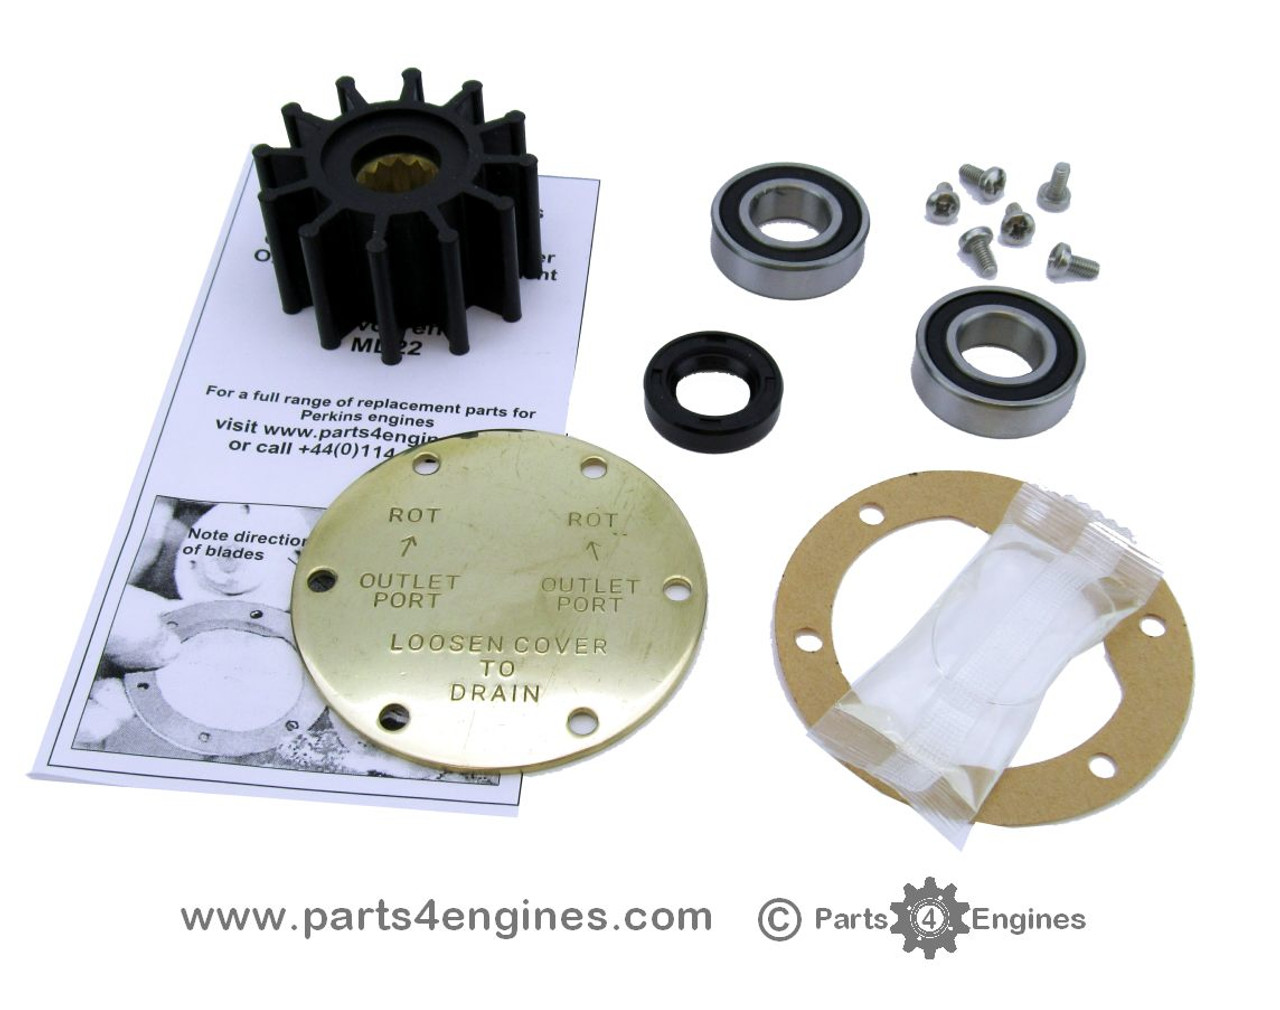 Volvo Penta Tmd22 Raw Water Pump Impeller Service And Rebuild Kit